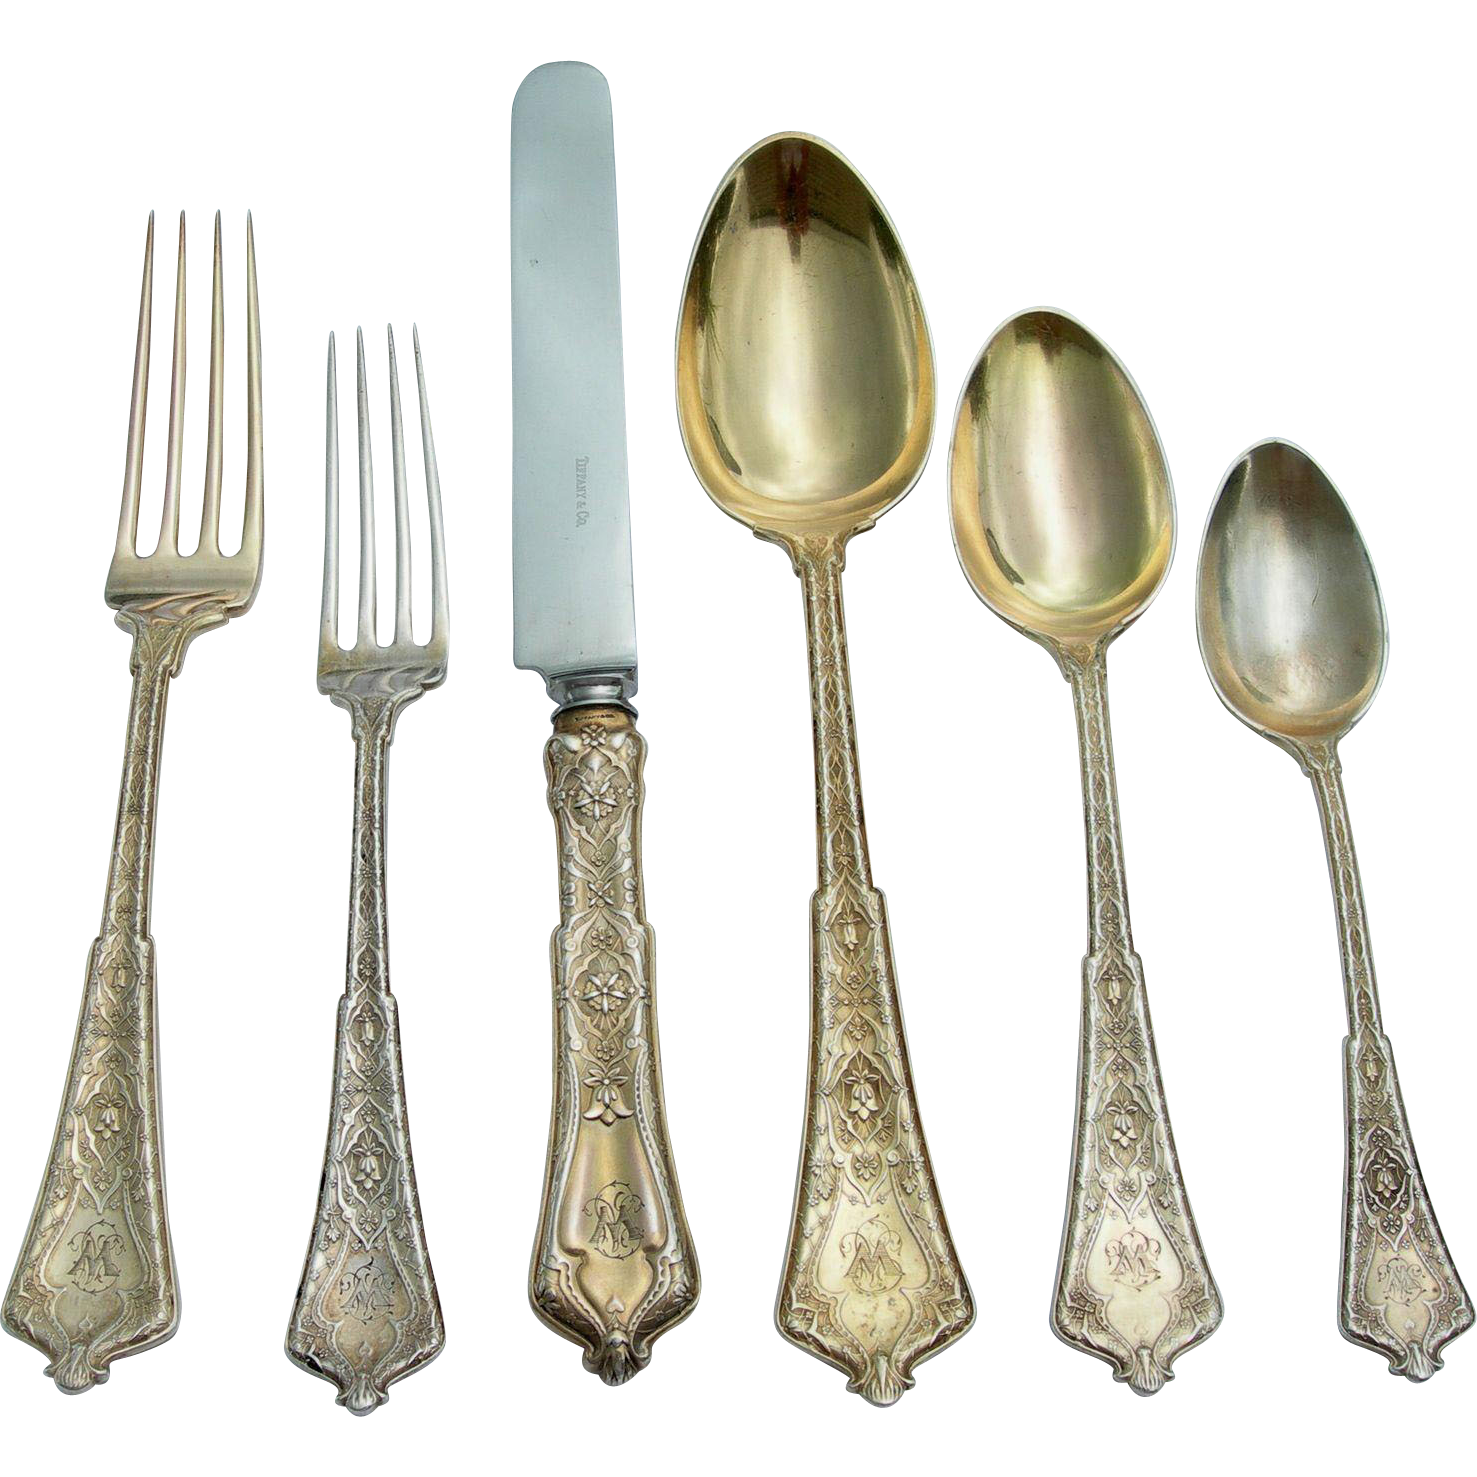 Tiffany Sterling Silver Flatware Set - Persian Pattern - 72 Pieces - Initial W